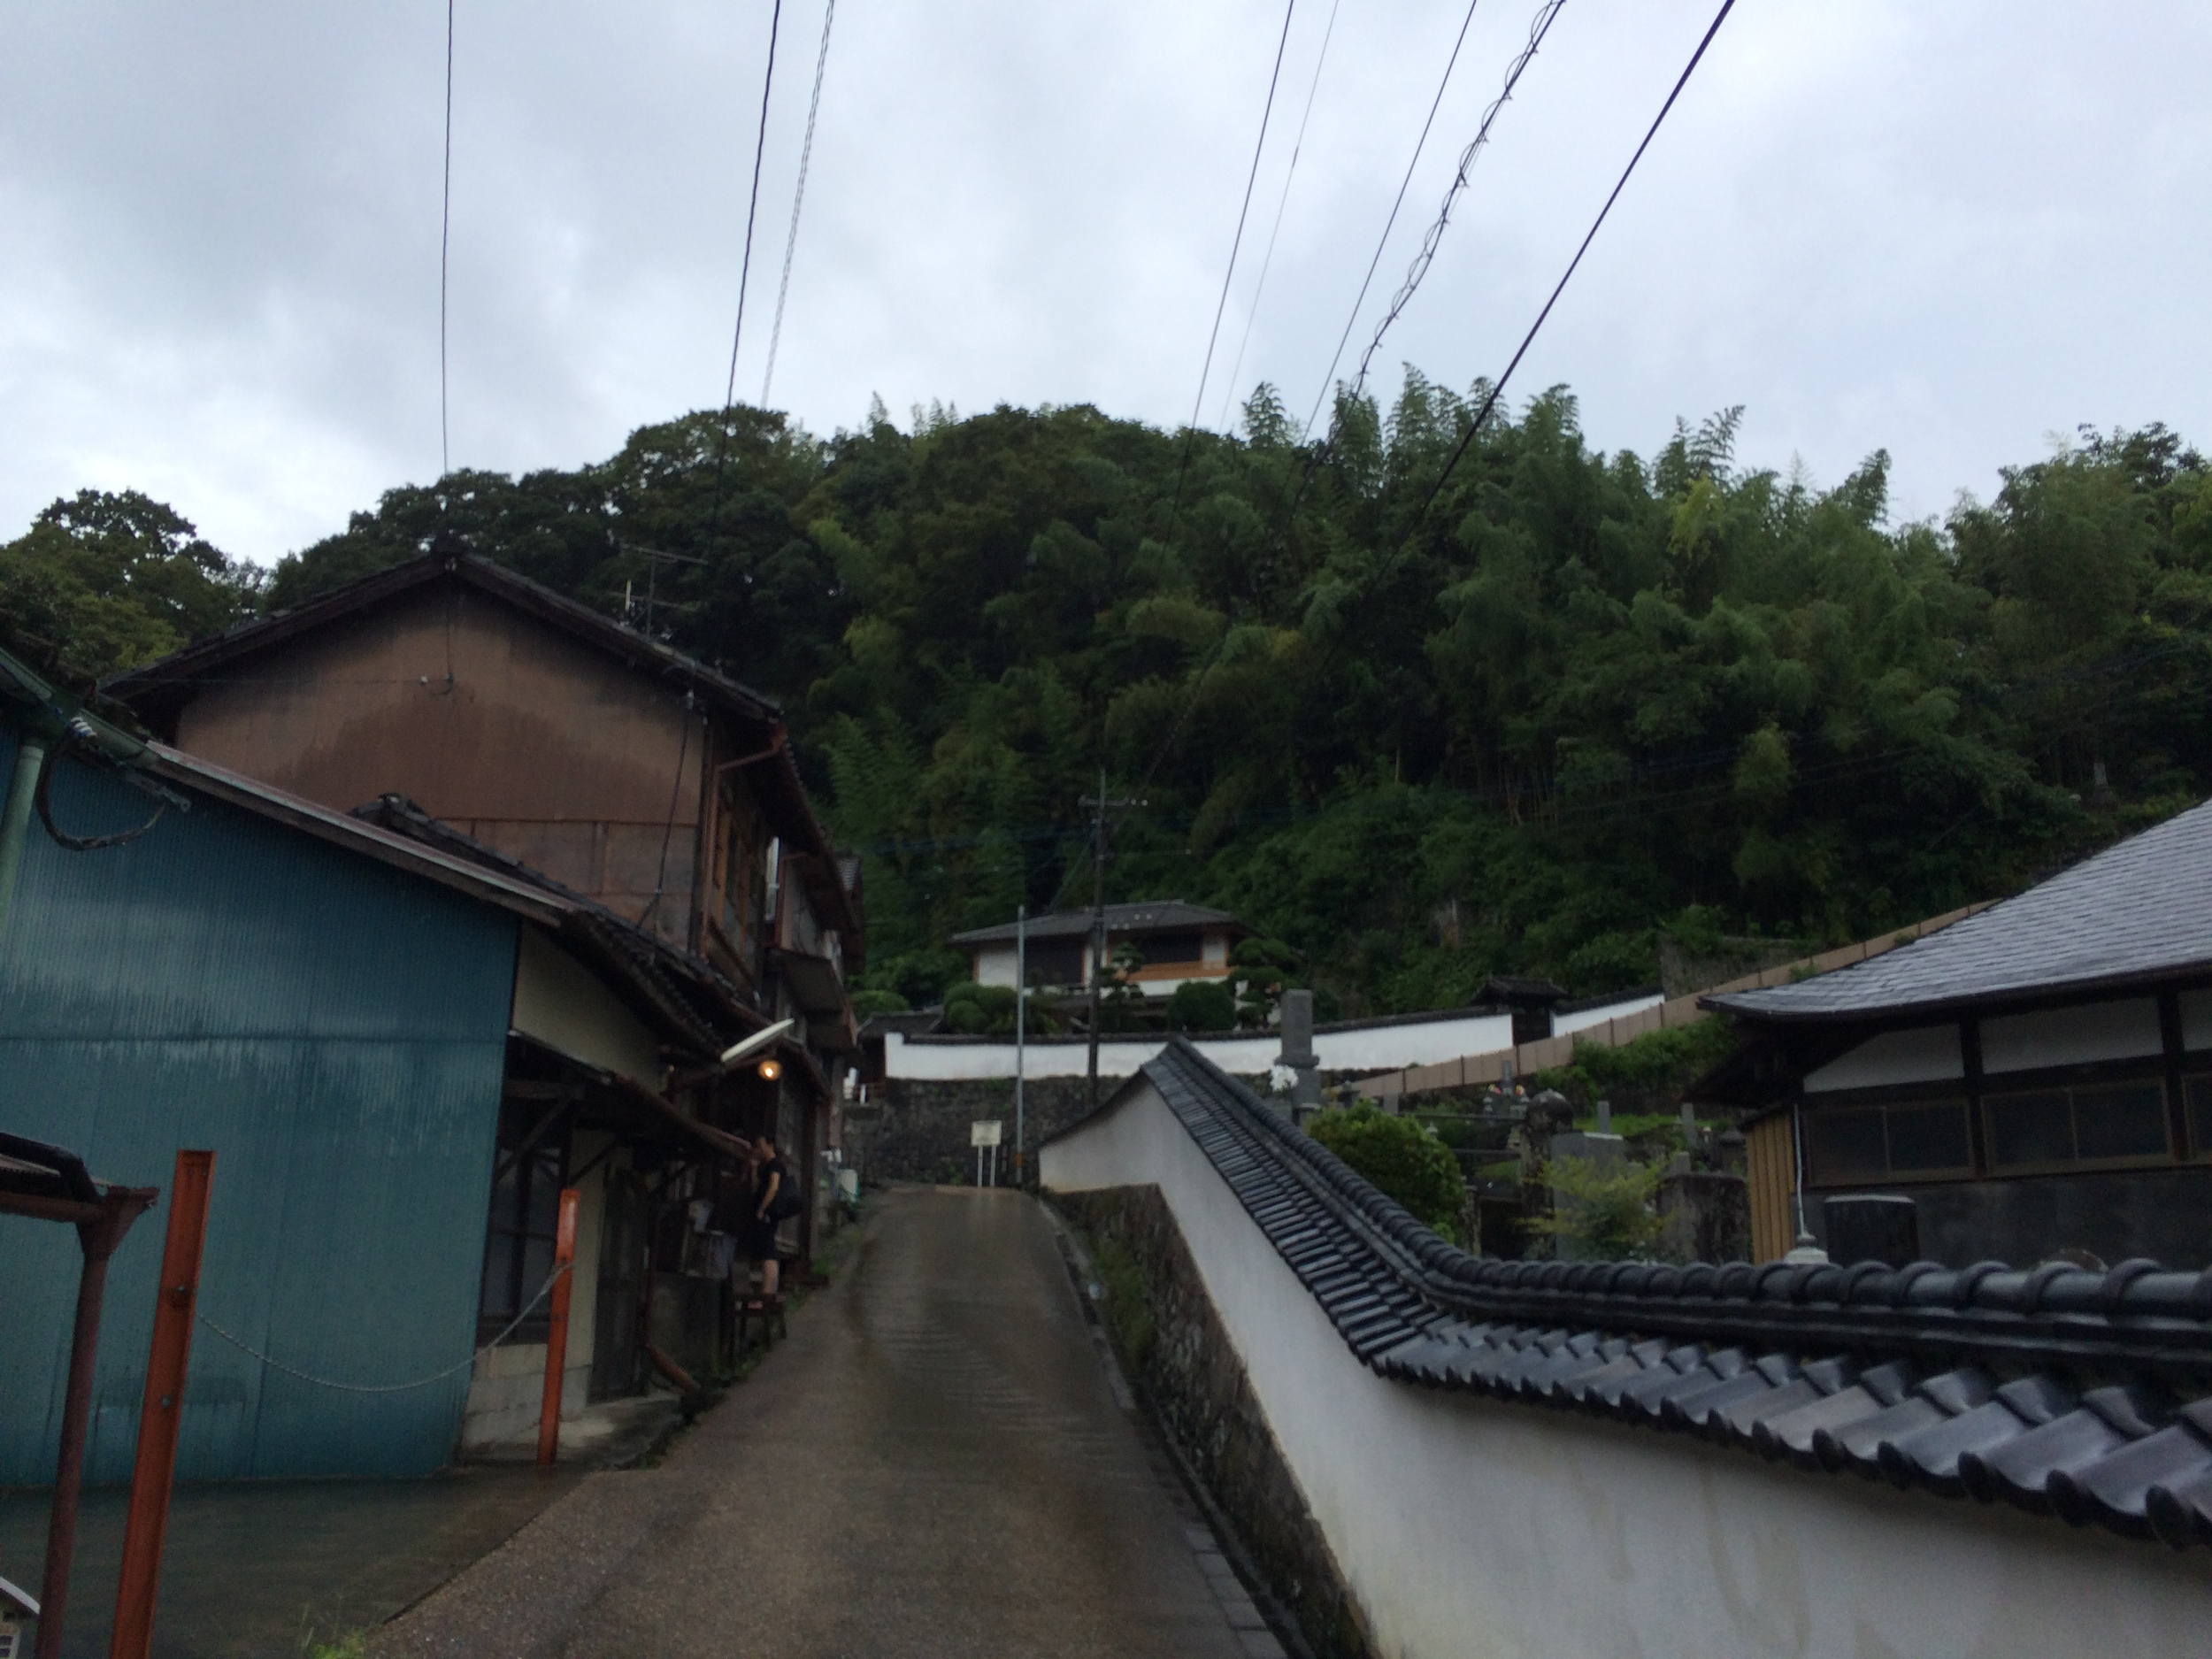 Another shot of the house we're showing in (on the left).  このような通りの上に展示会場になる家があります。